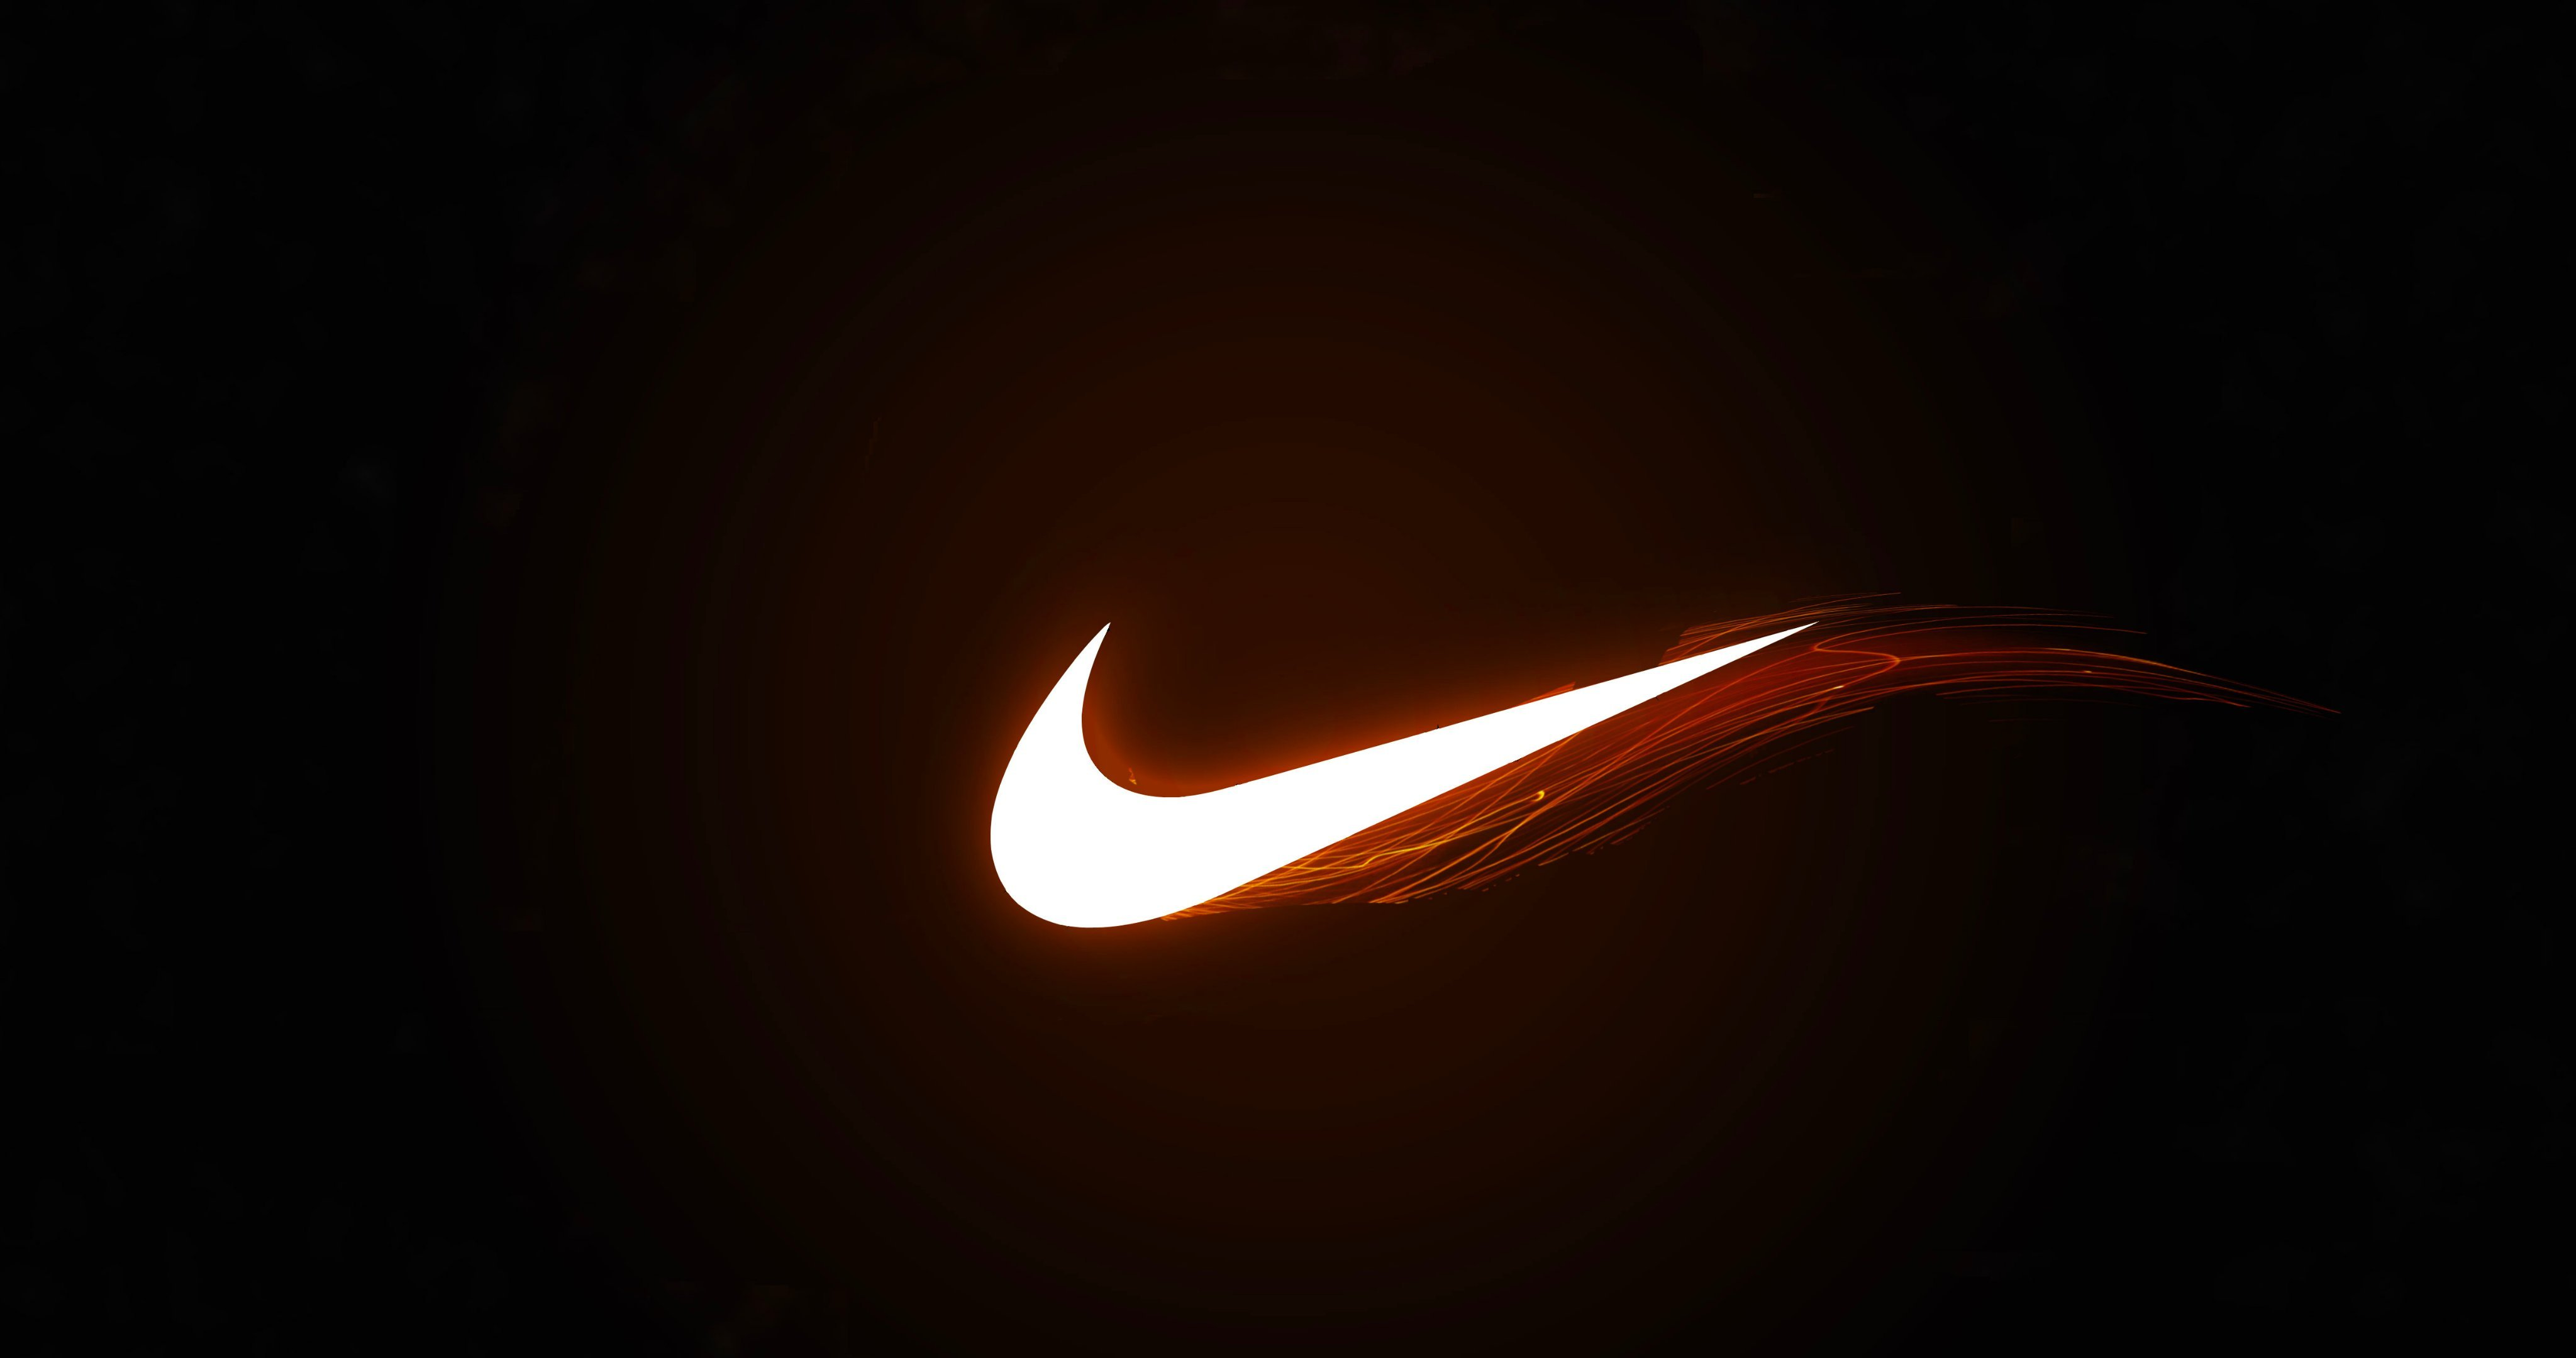 download Nike 4k Wallpaper Sports wallpapers [4096x2160] for 4096x2160